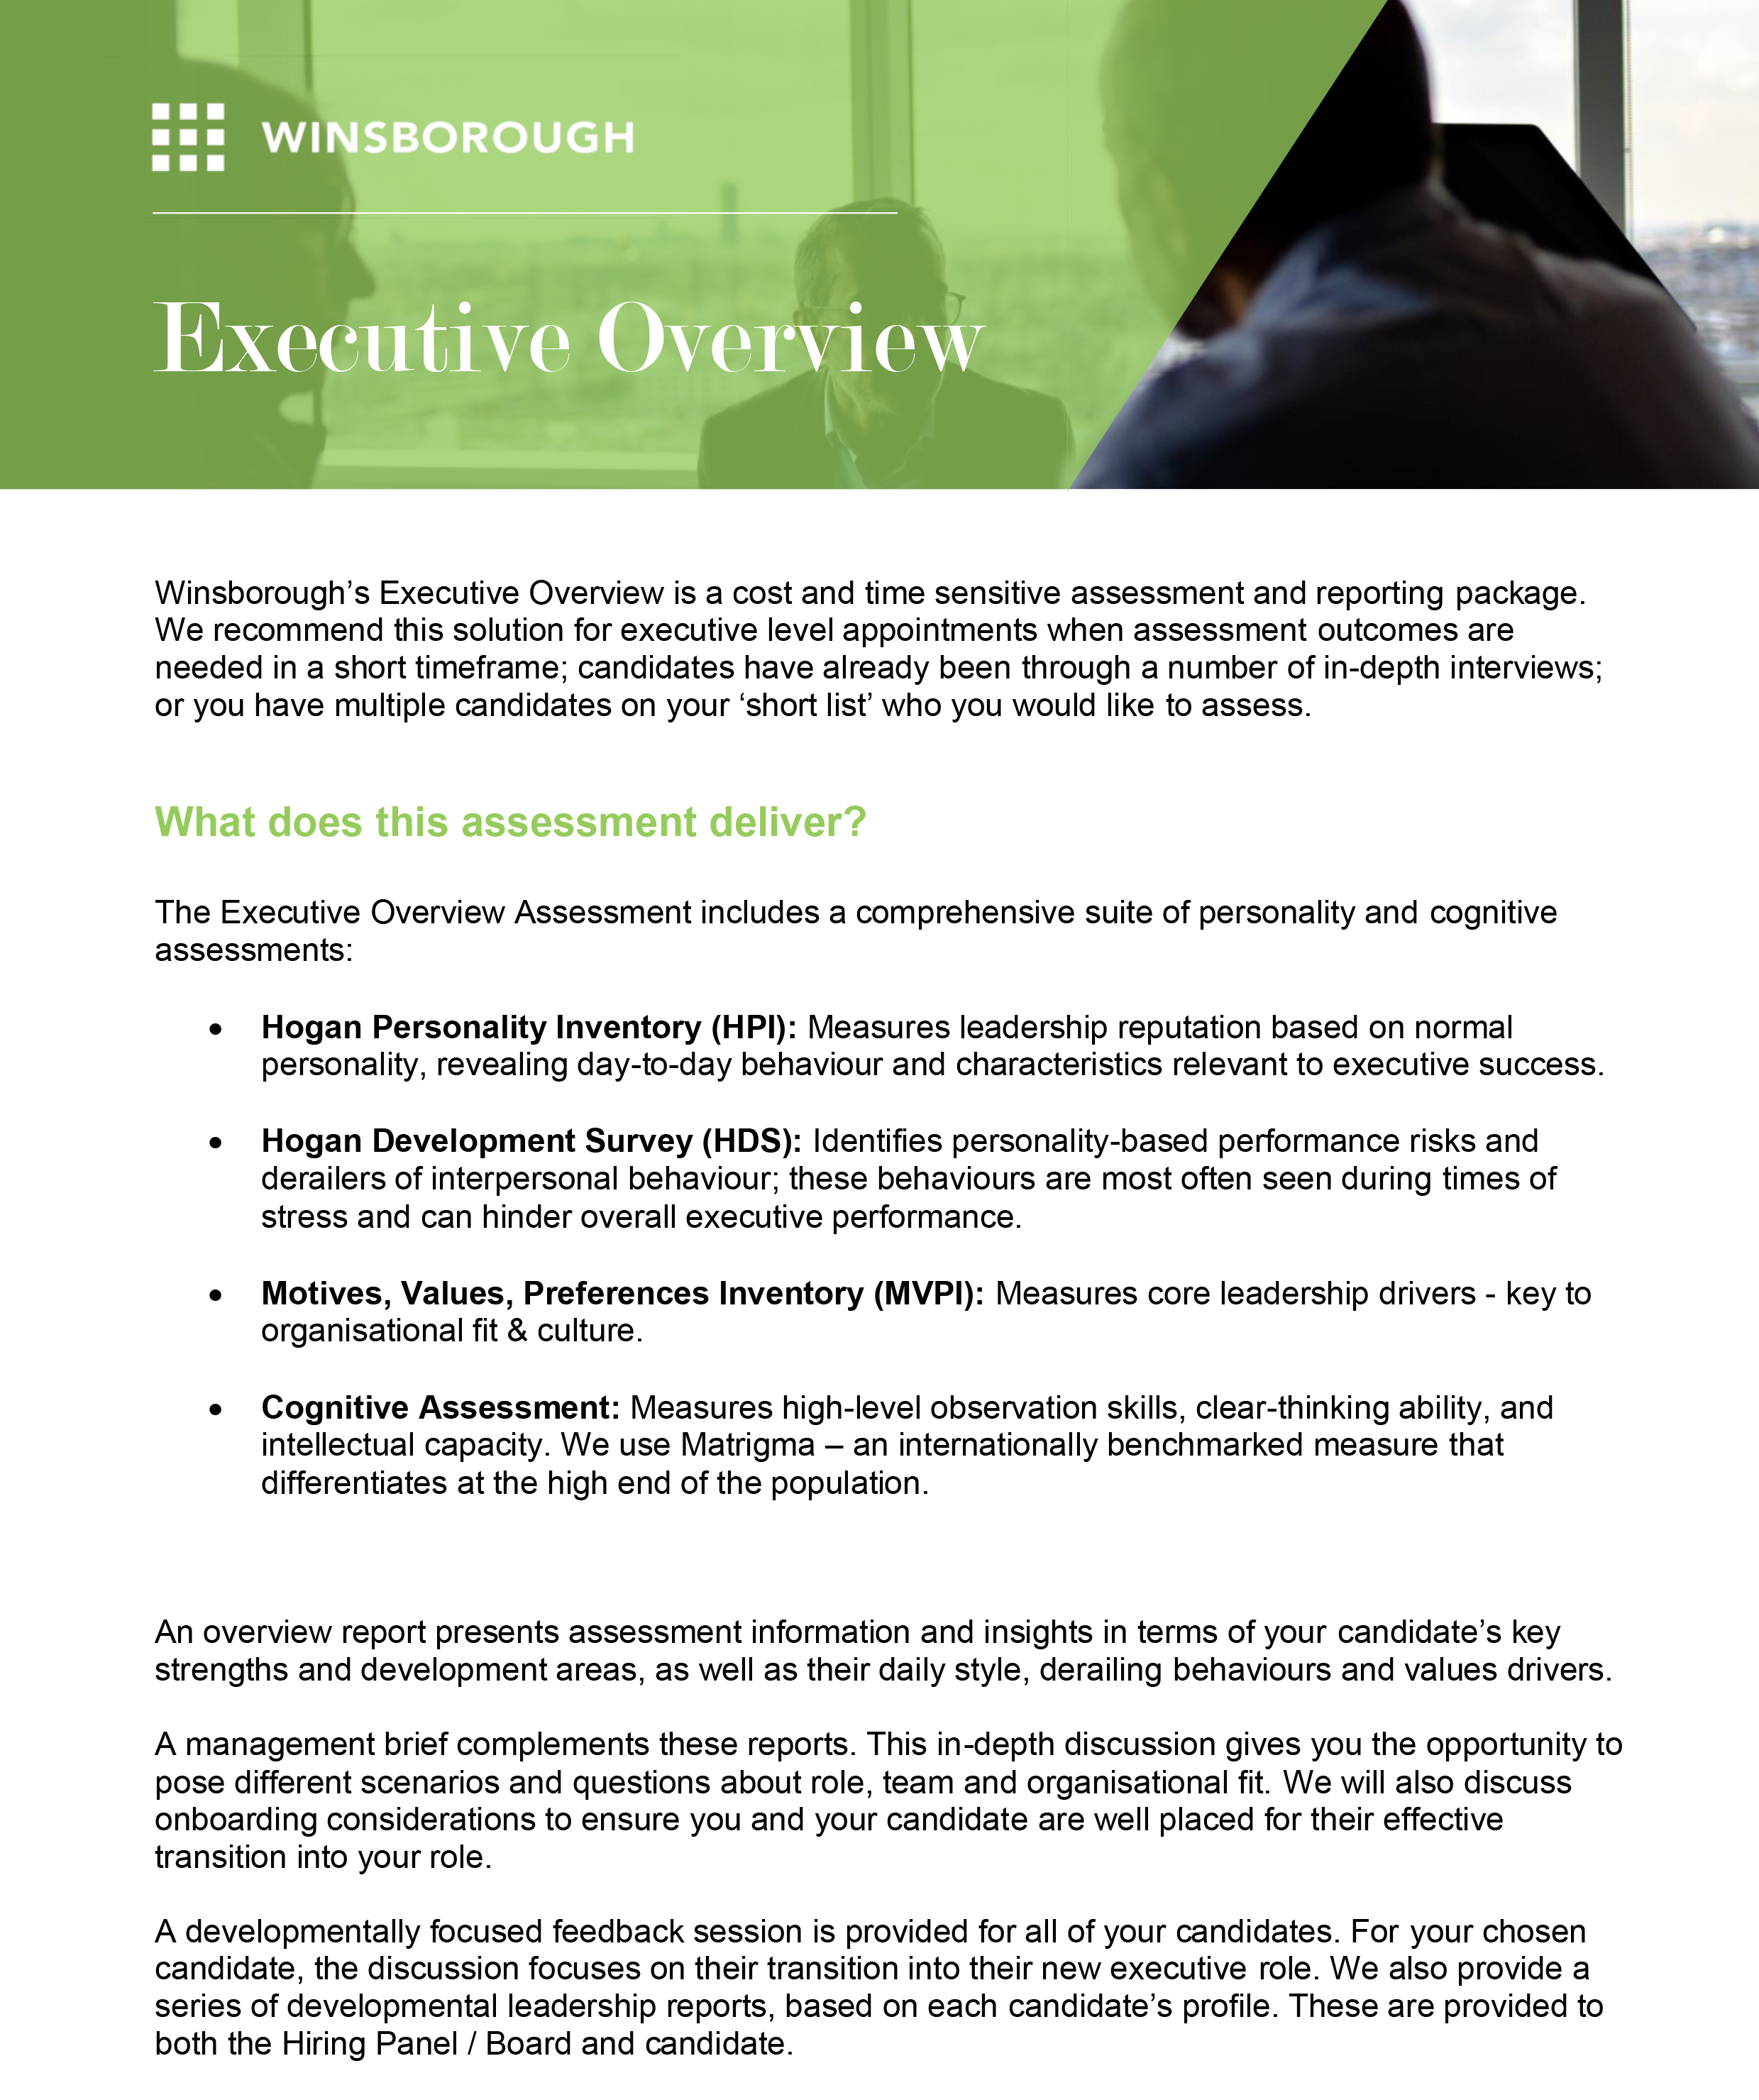 99_Winsborough__NoPrice_OnePageOverview_Exexcutive_Overview_2020_04_16 copy